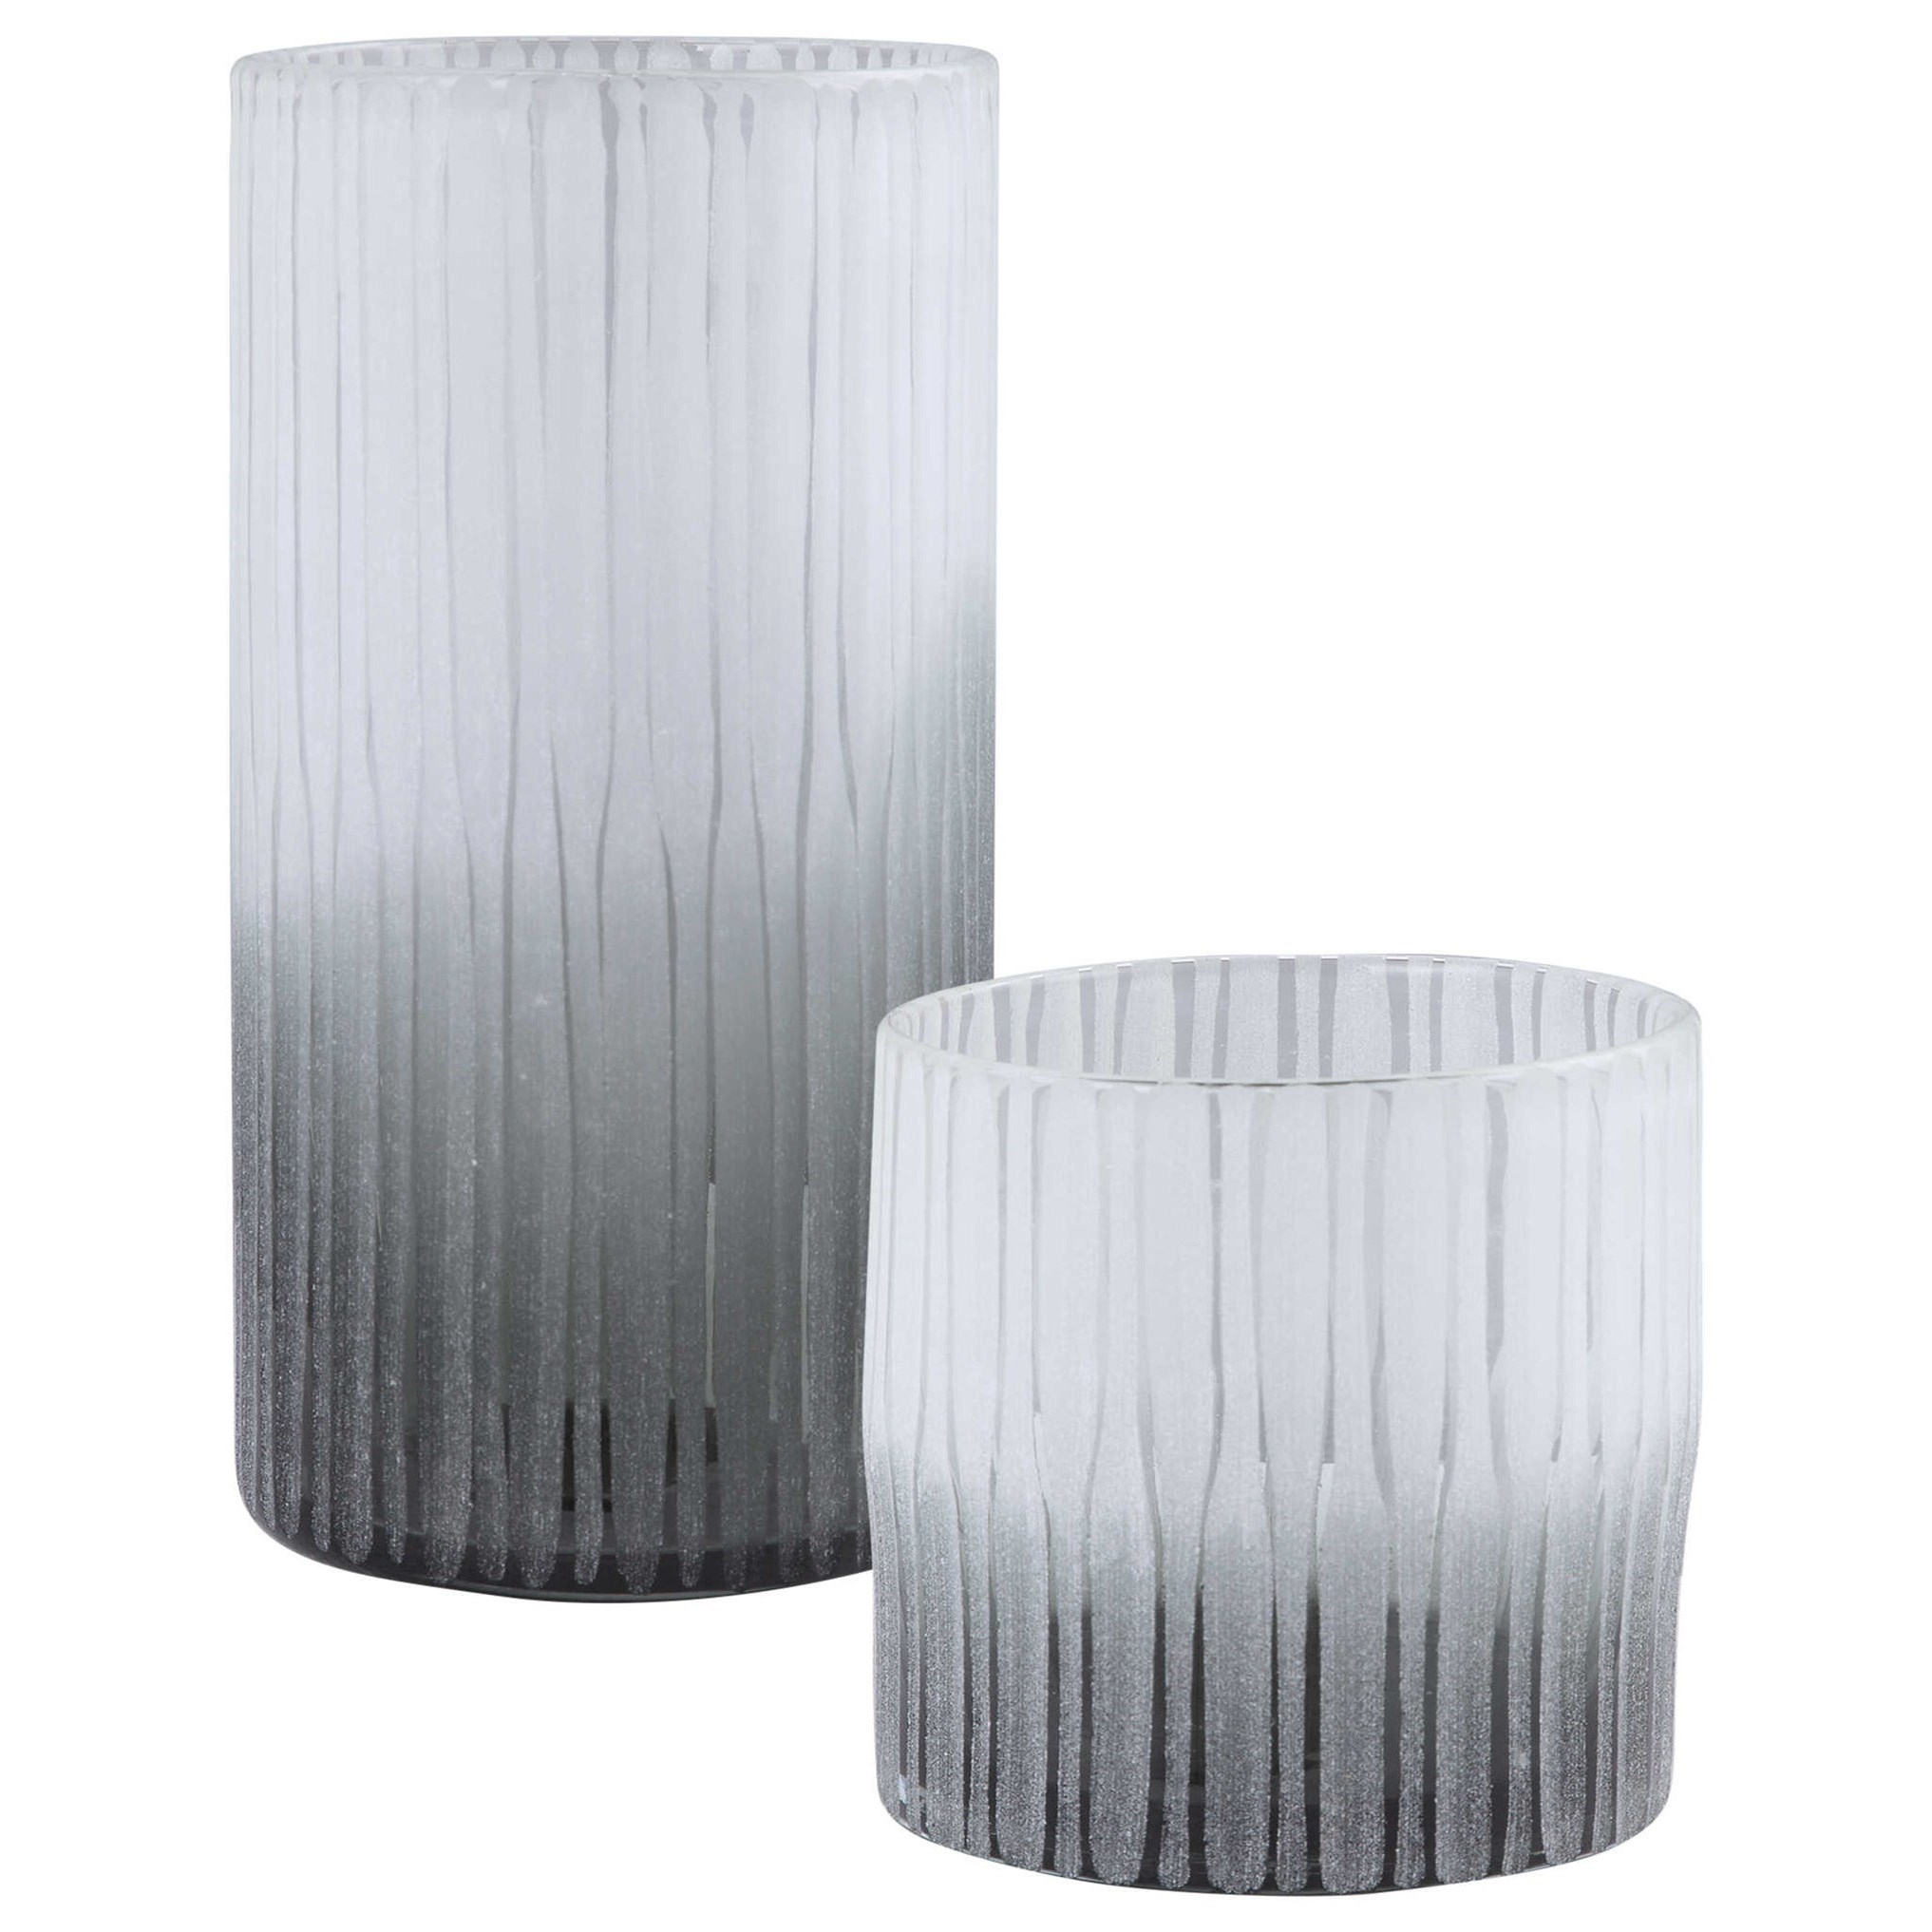 Accessories - Vases and Urns Como Etched Glass Vases, S/2 by Uttermost at Wayside Furniture